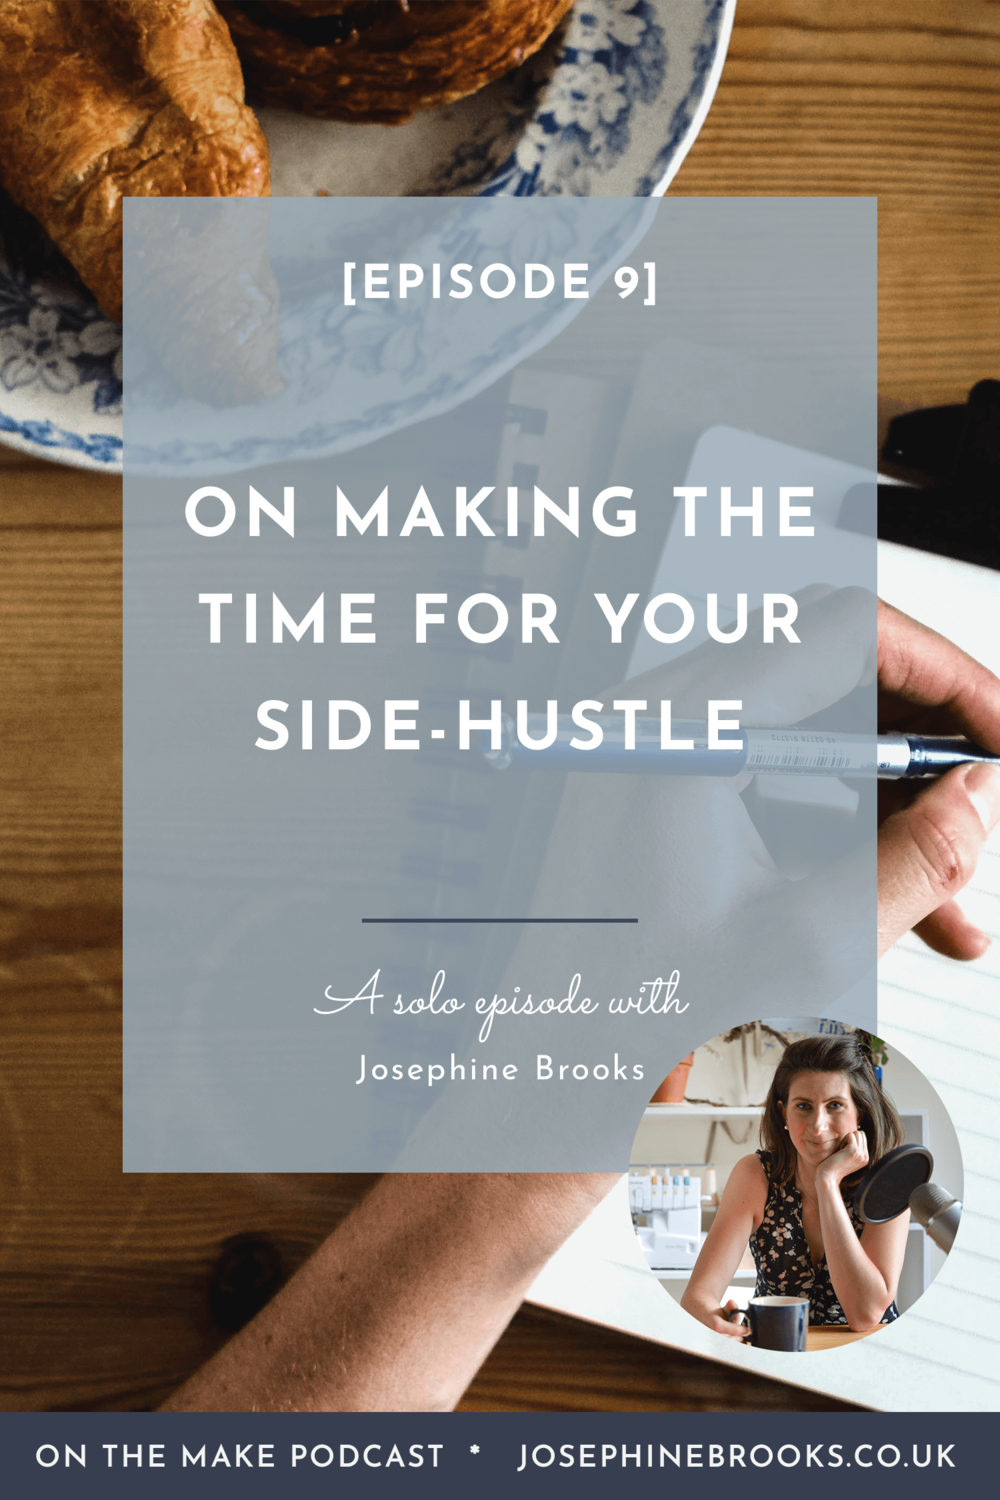 Making the time for a side-hustle, juggling a side-hustle and a job, Side-hustles uk, Side Hustle ideas, Building a creative business on the side of a job